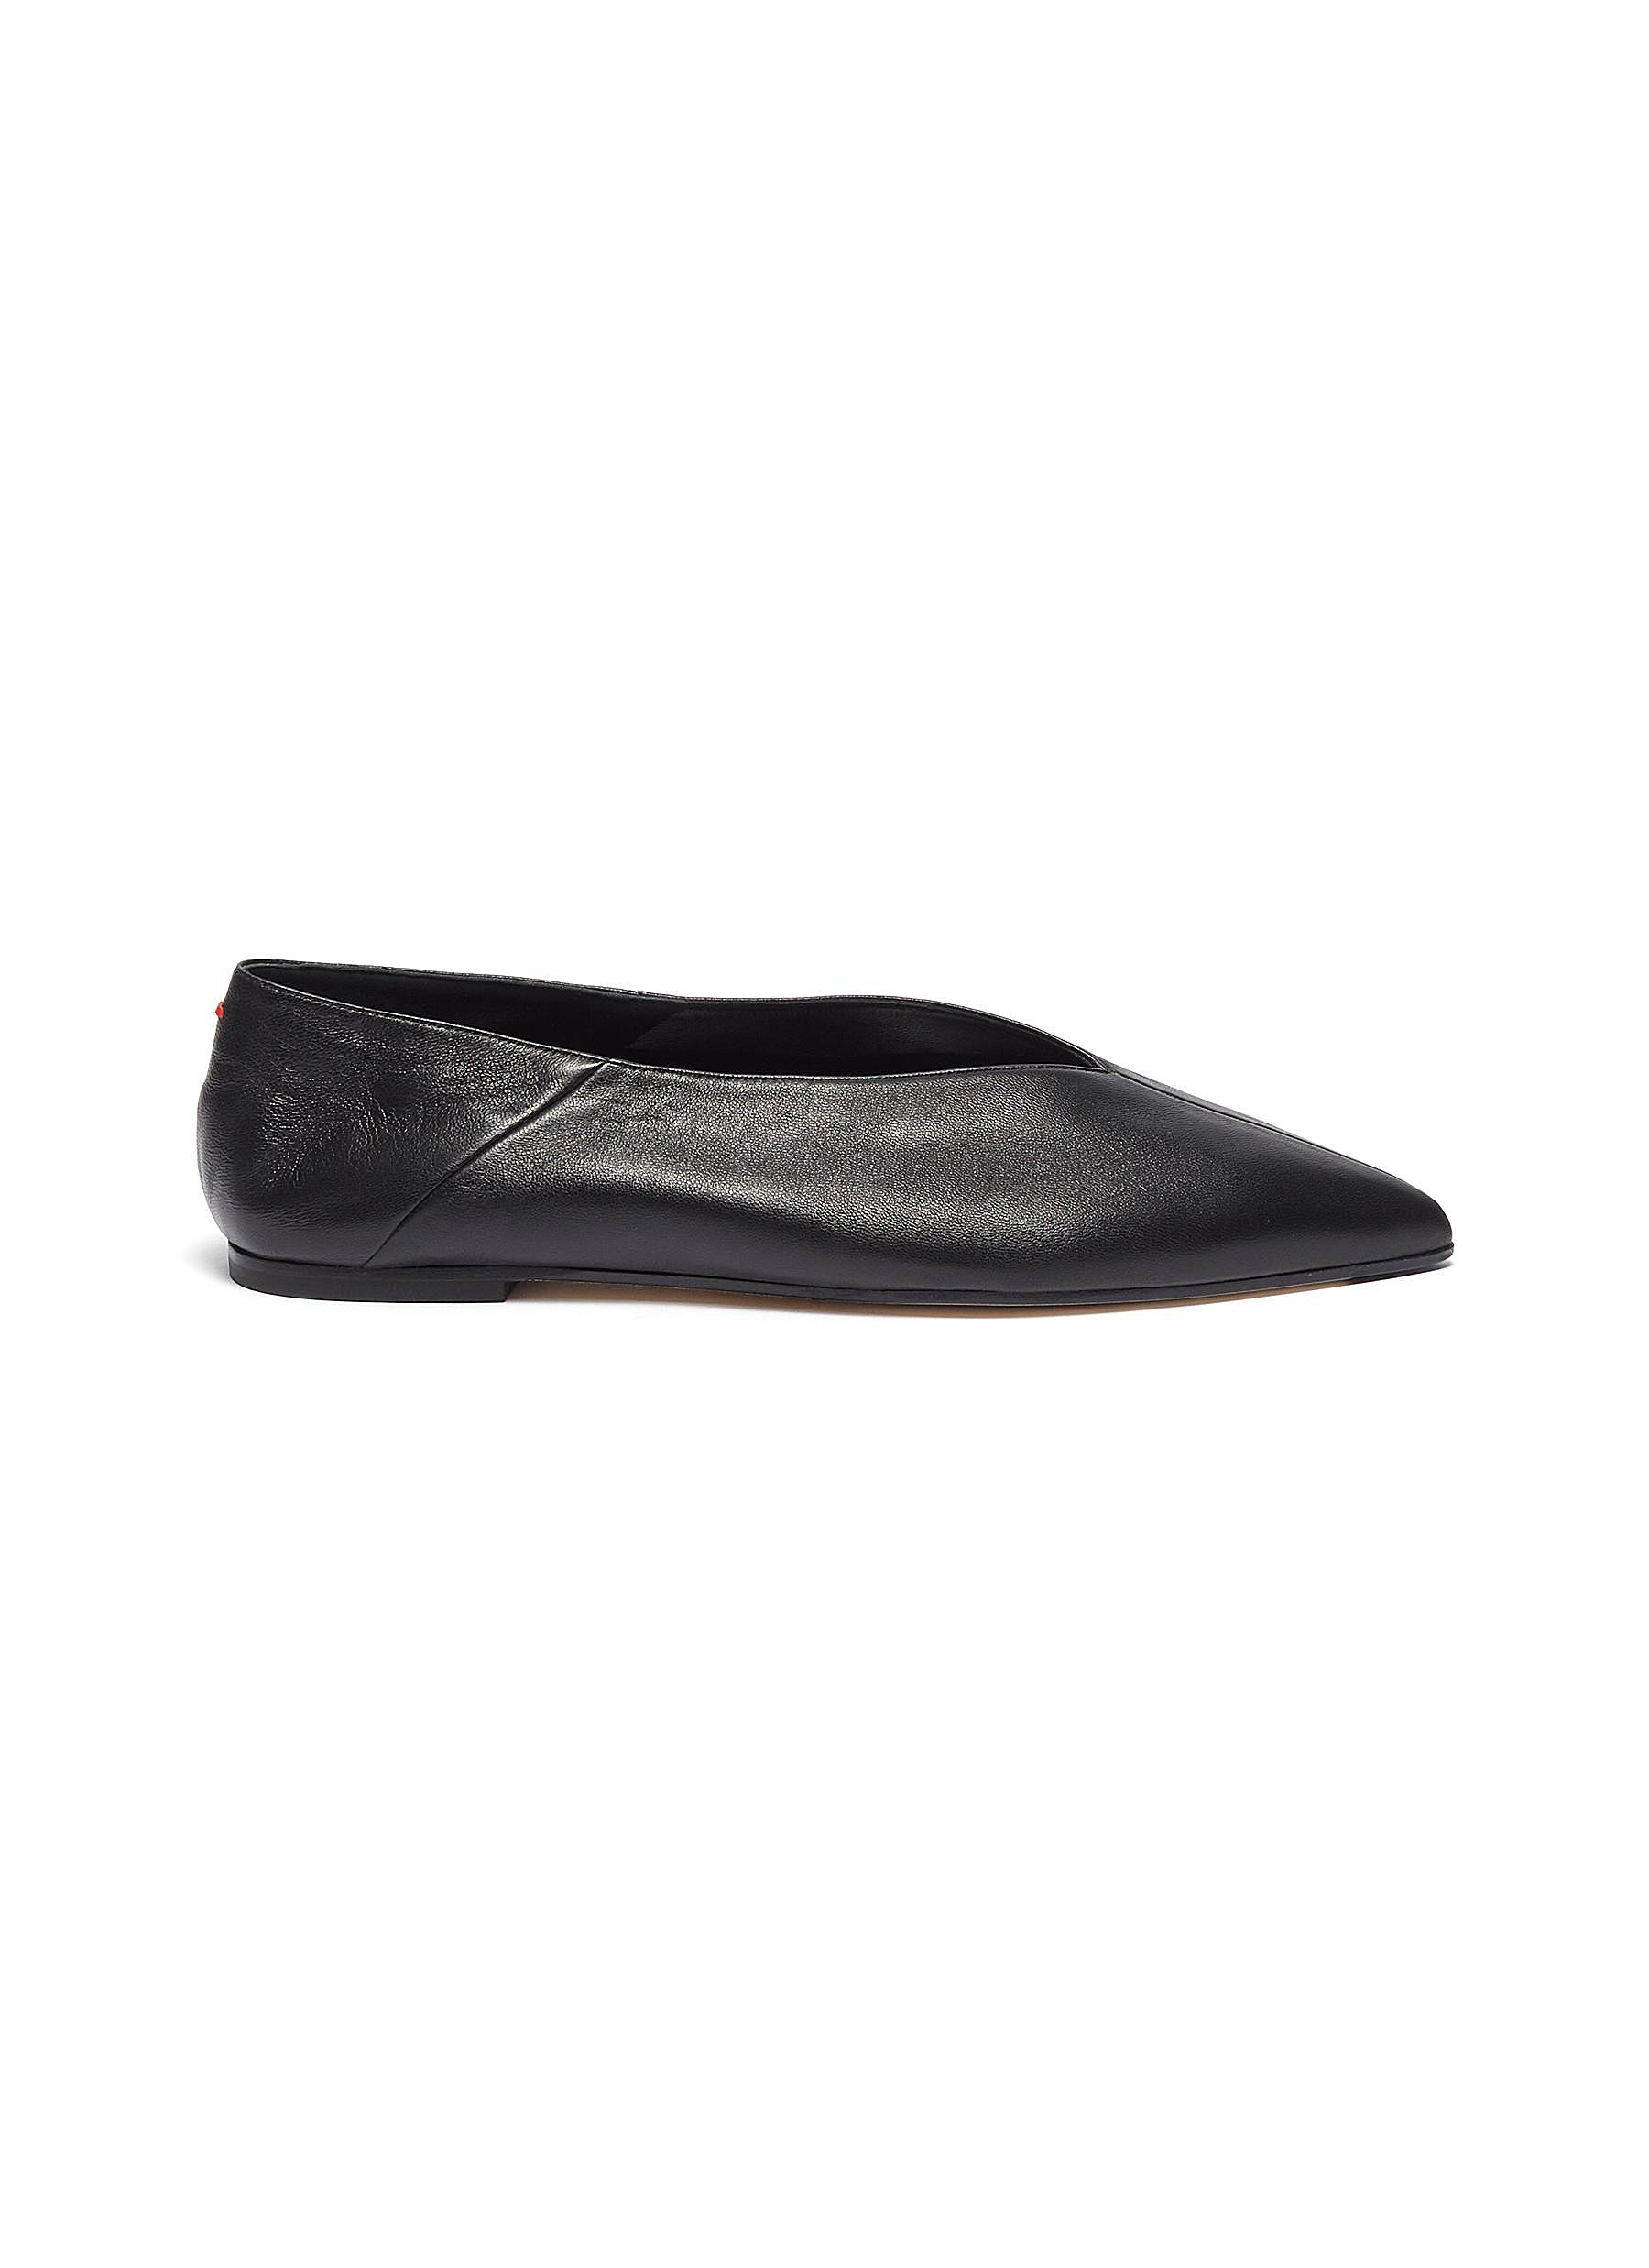 Aeyde Flats 'Moa' choked-up leather flats